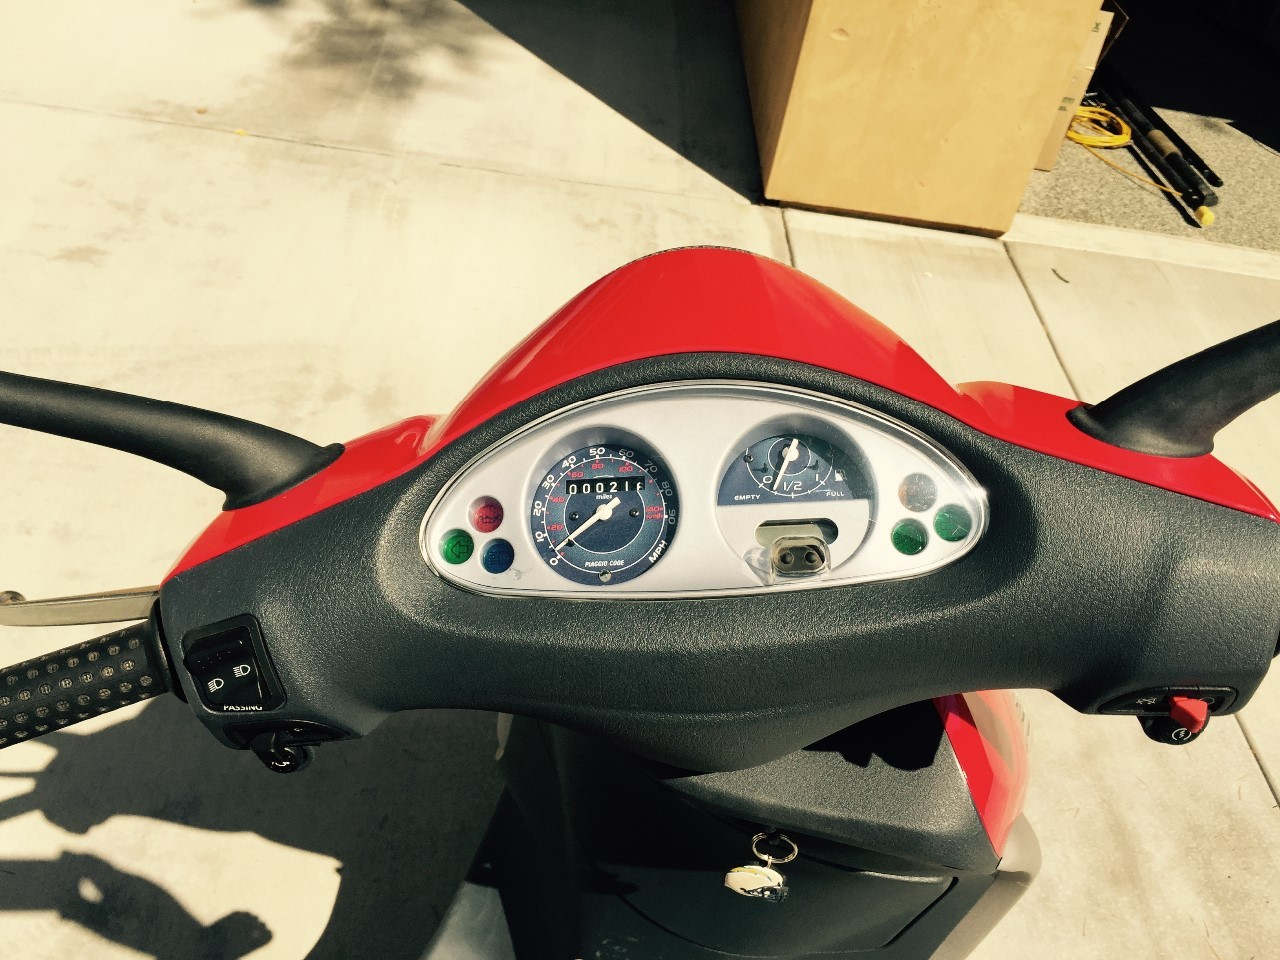 2006 Piaggio Fly 150, motorcycle listing